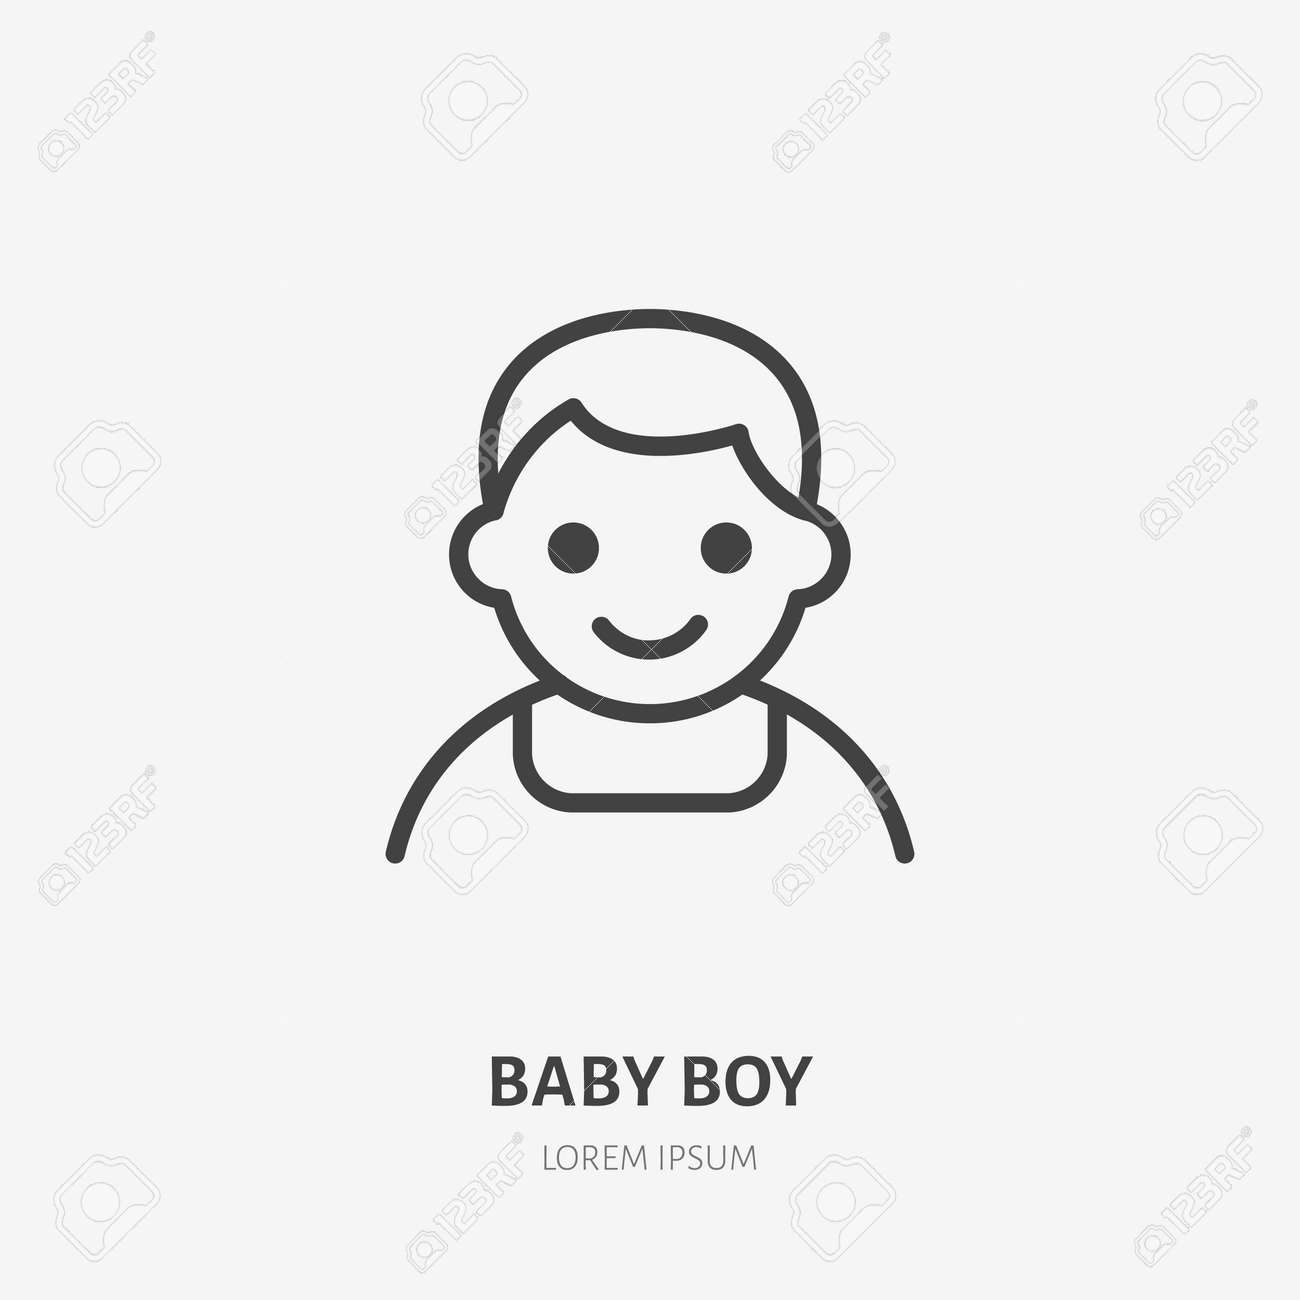 Baby boy flat line icon. Vector outline illustration of little kid avatar. Black color thin linear sign for children simple profile. - 161710111